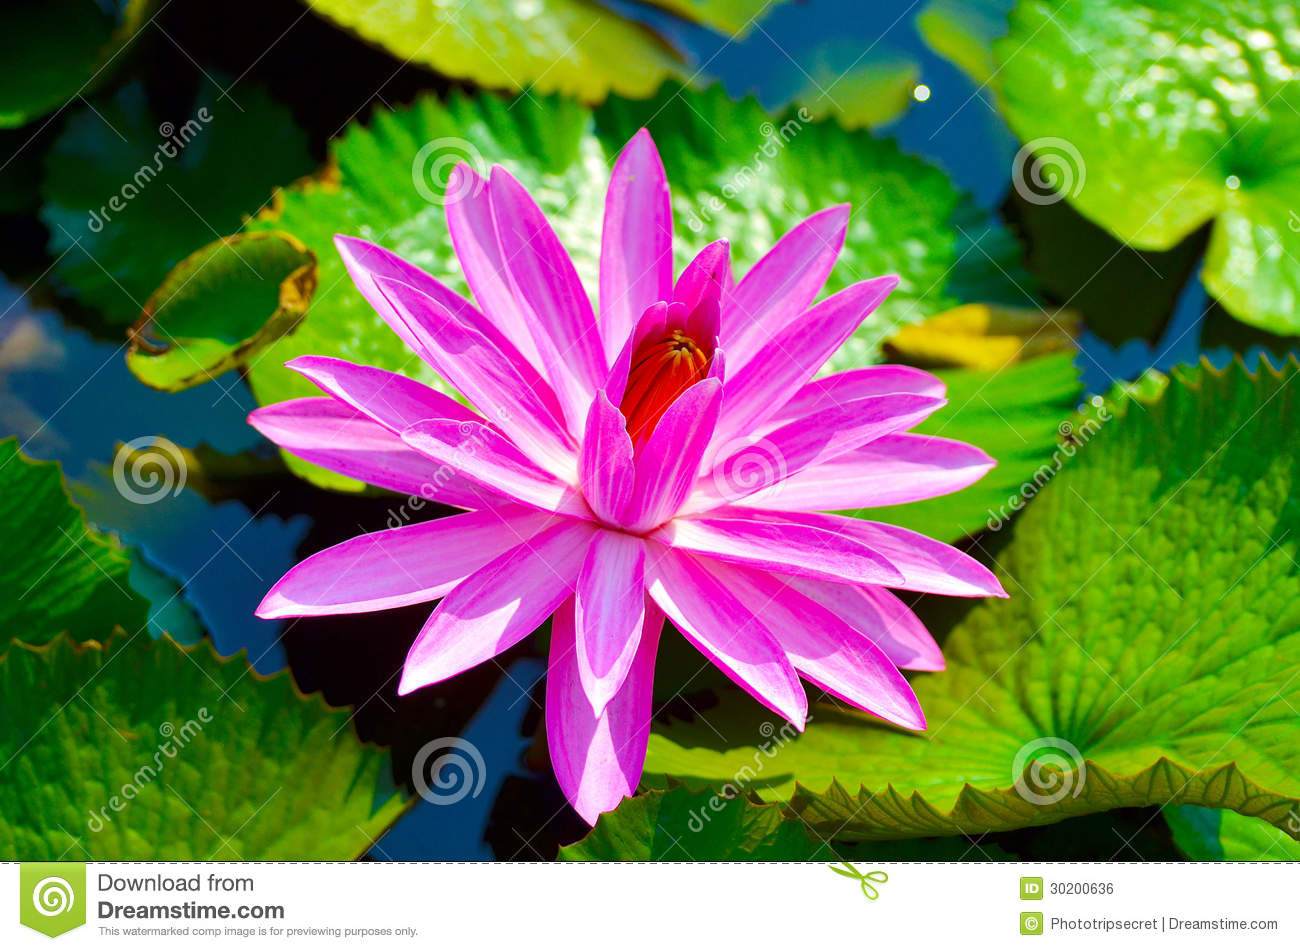 Floating Water Lily Royalty Free Stock Image - Image: 30200636